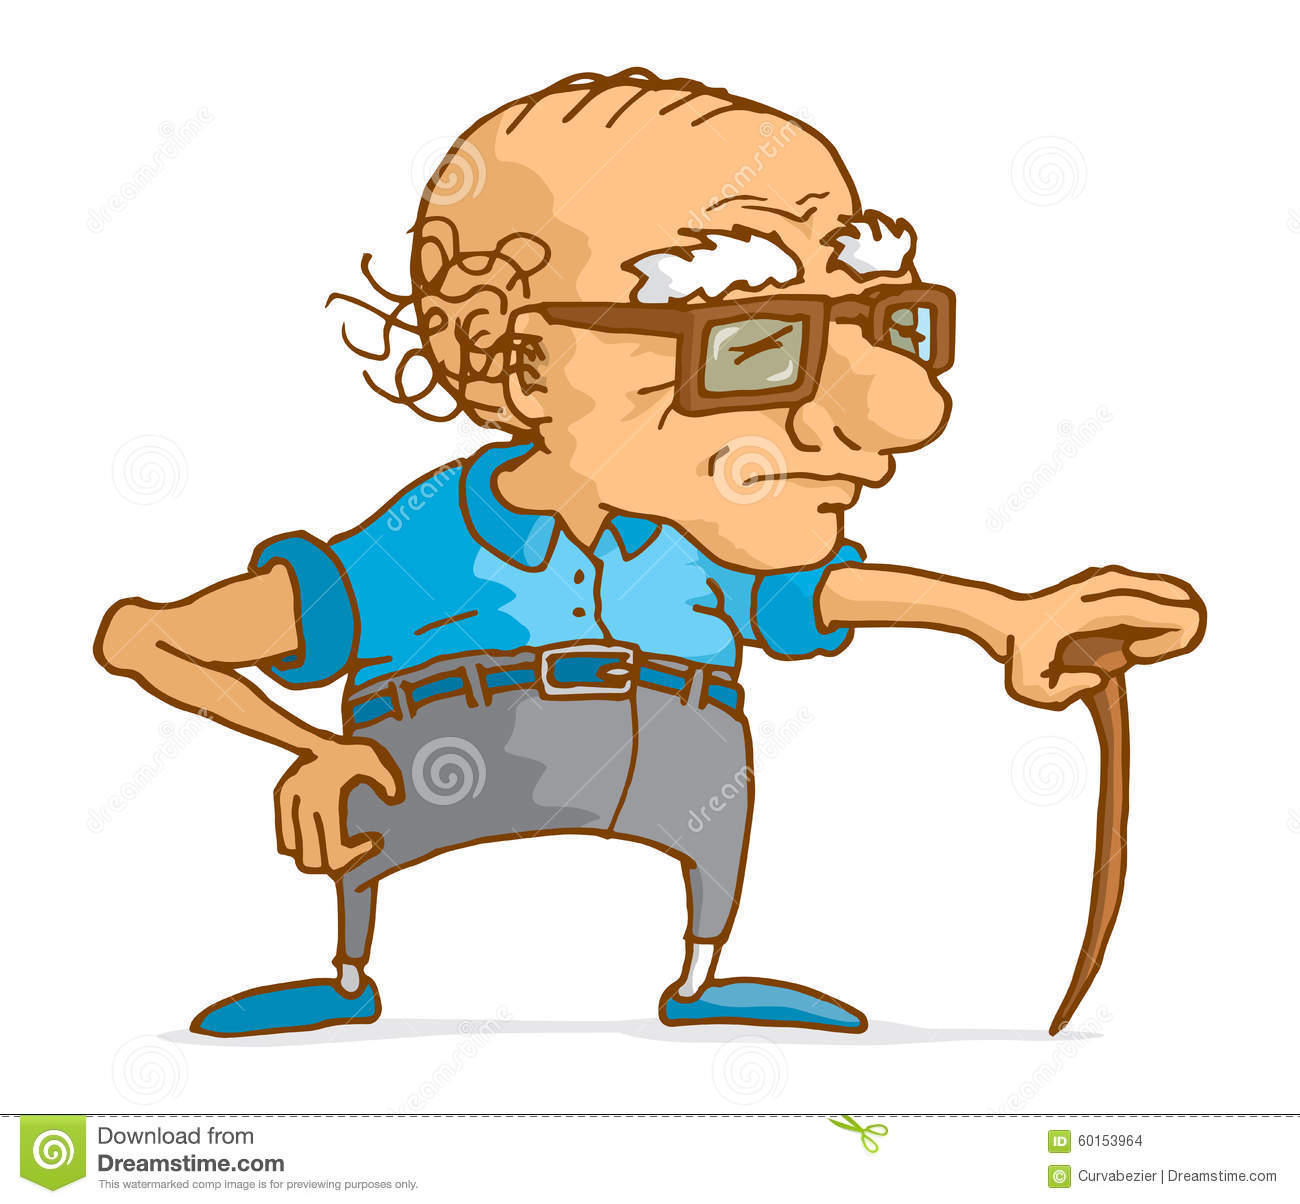 Clipart alter mann banner royalty free library Cartoon Active Old Man Stock Photos, Images, & Pictures - 466 Images banner royalty free library